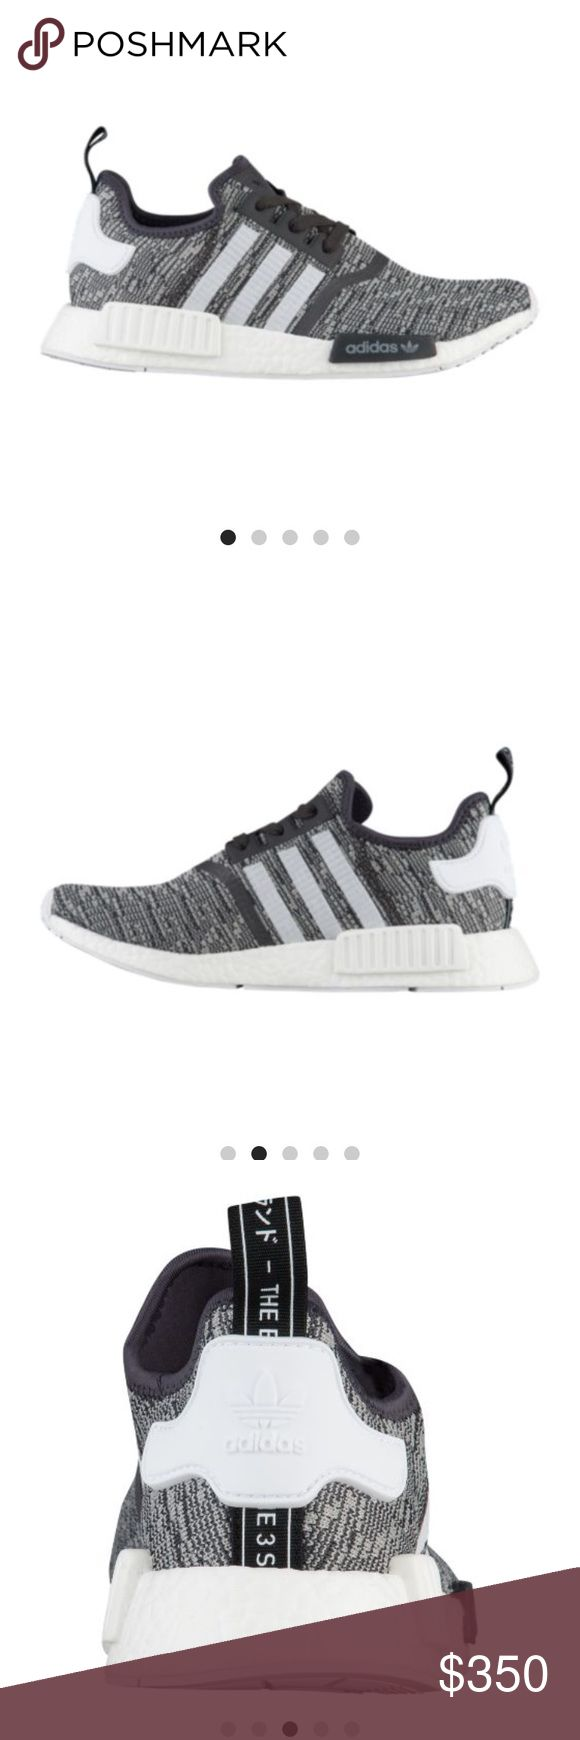 Adidas NMD sneakers women's size 5.5 Brand new released last week women's Adidas NMD sneakers size 5.5. I usually wear a size 6 but was advised to go half a size down. The 5.5 is the perfect fit. These are super lightweight and super stylish. Adidas Shoes